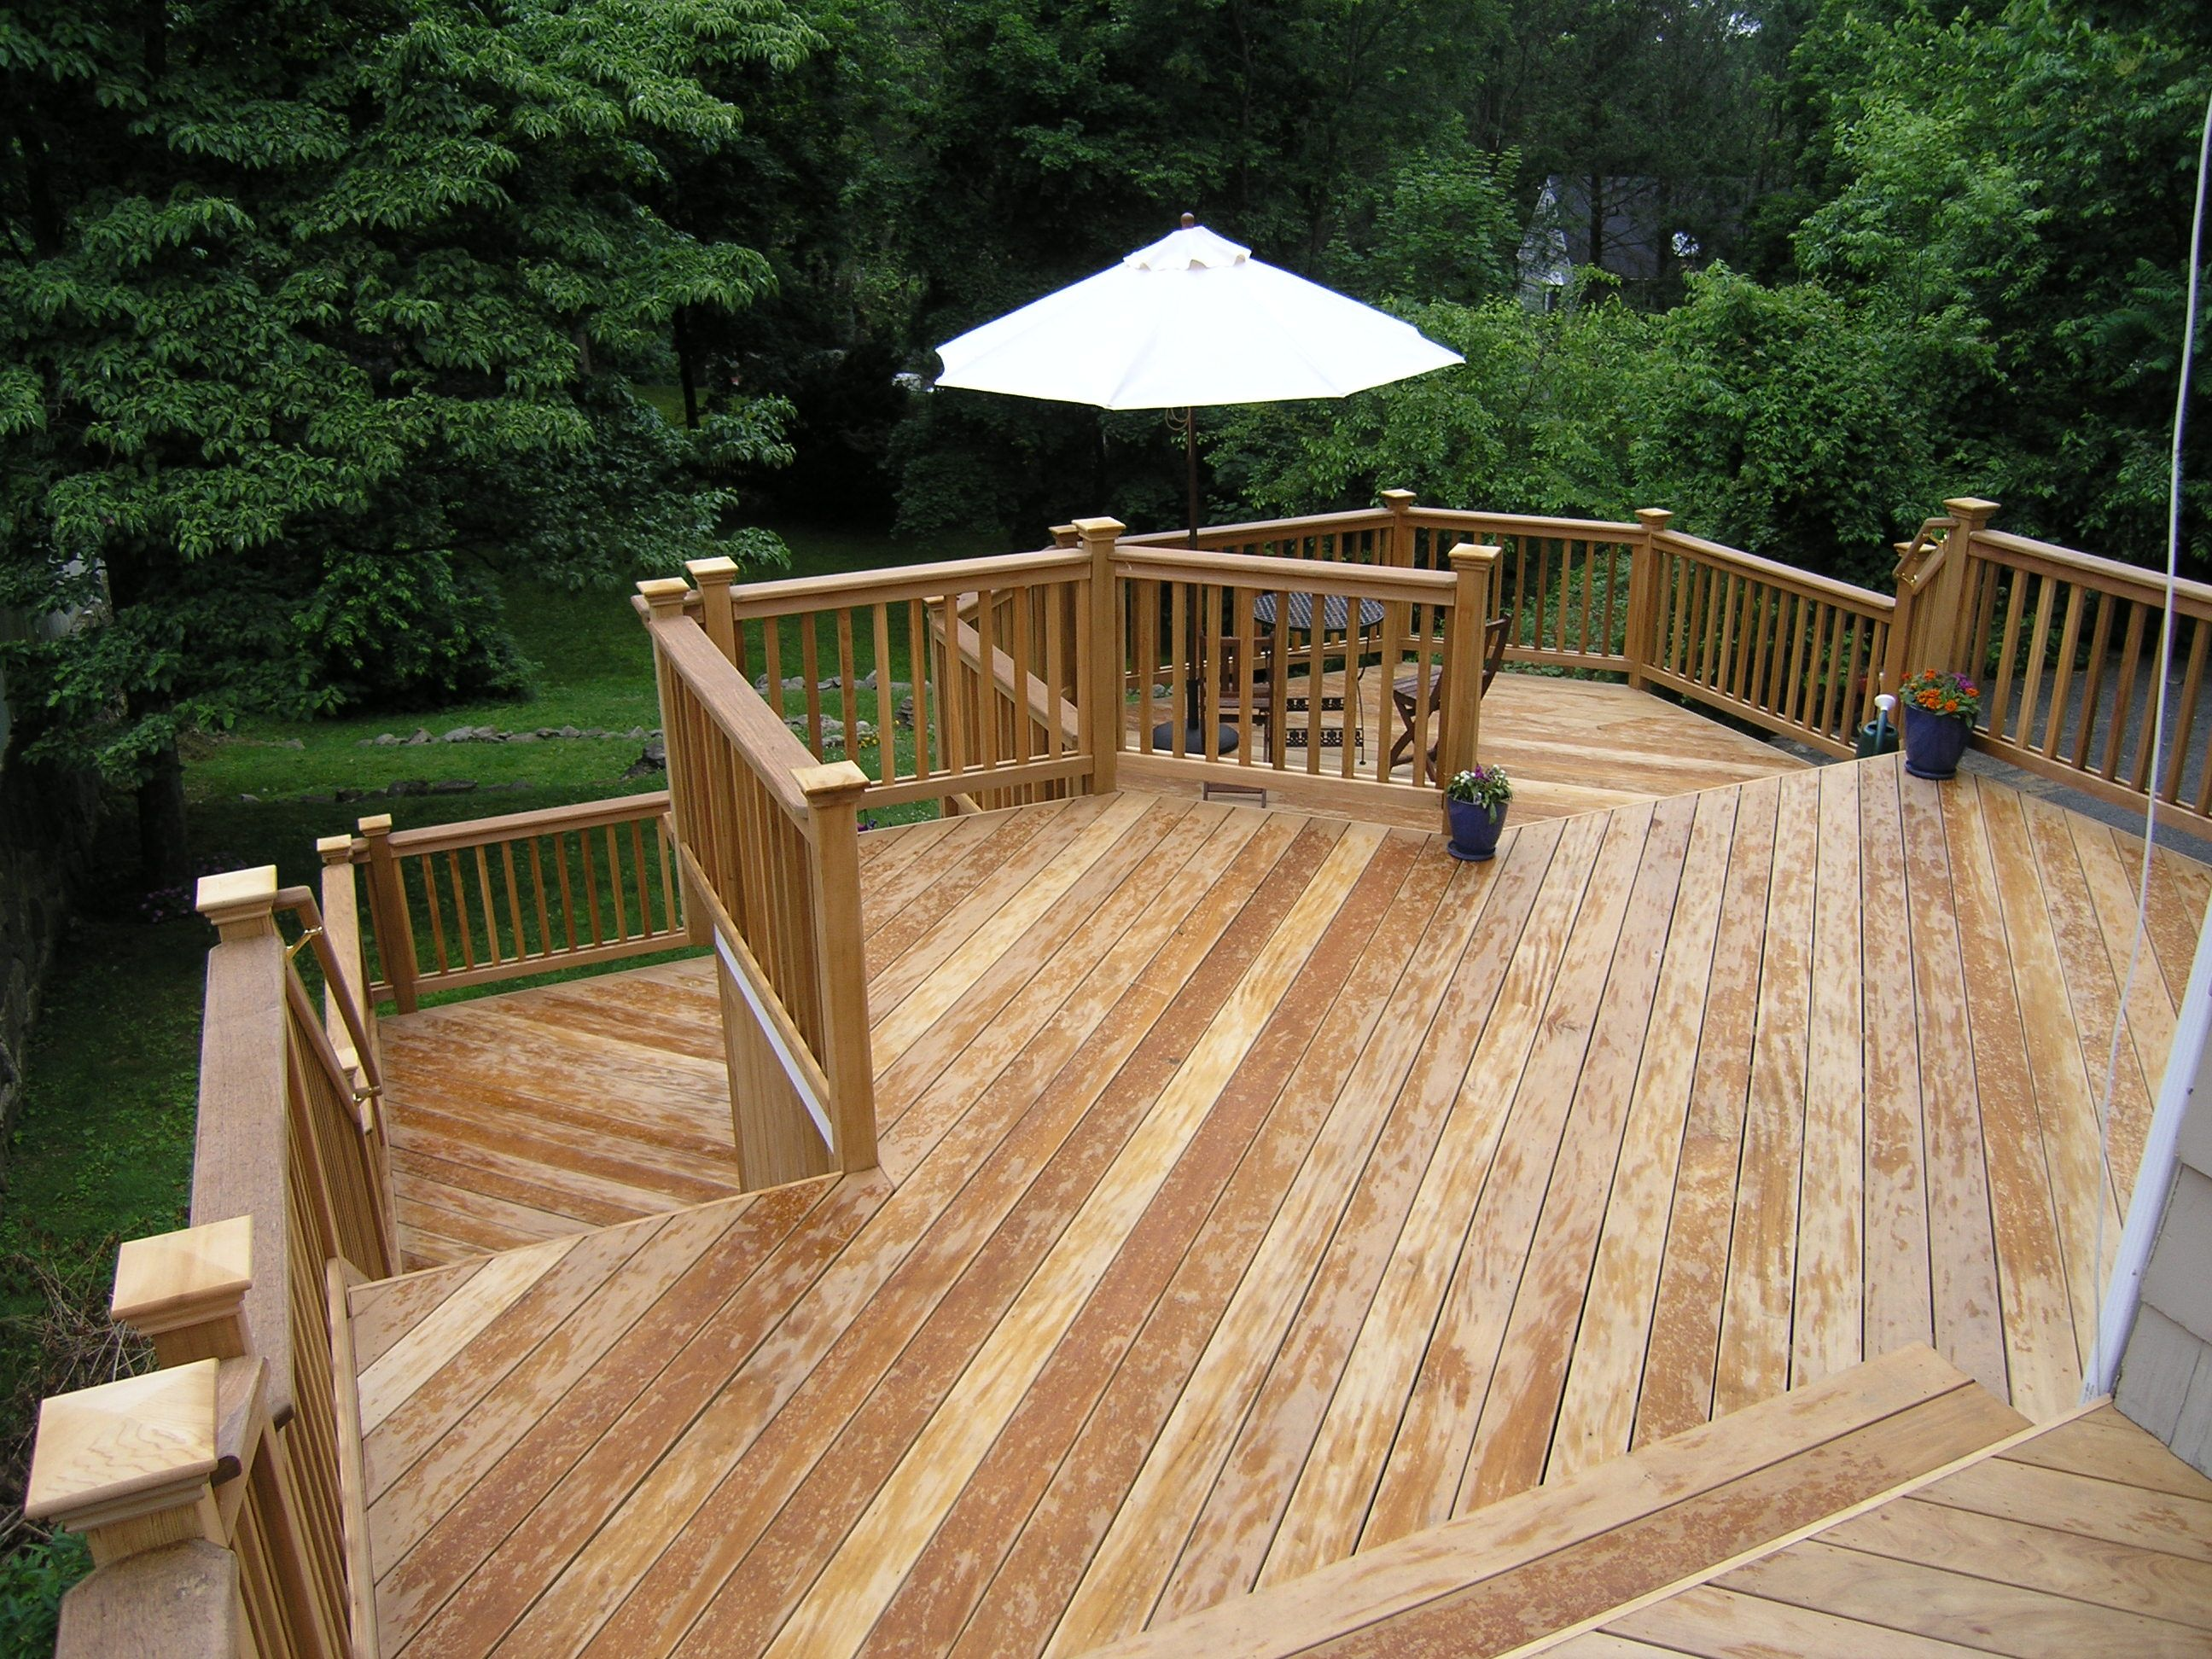 Cos cob natural wood deck completed wood decks natural for Photos of outdoor decks